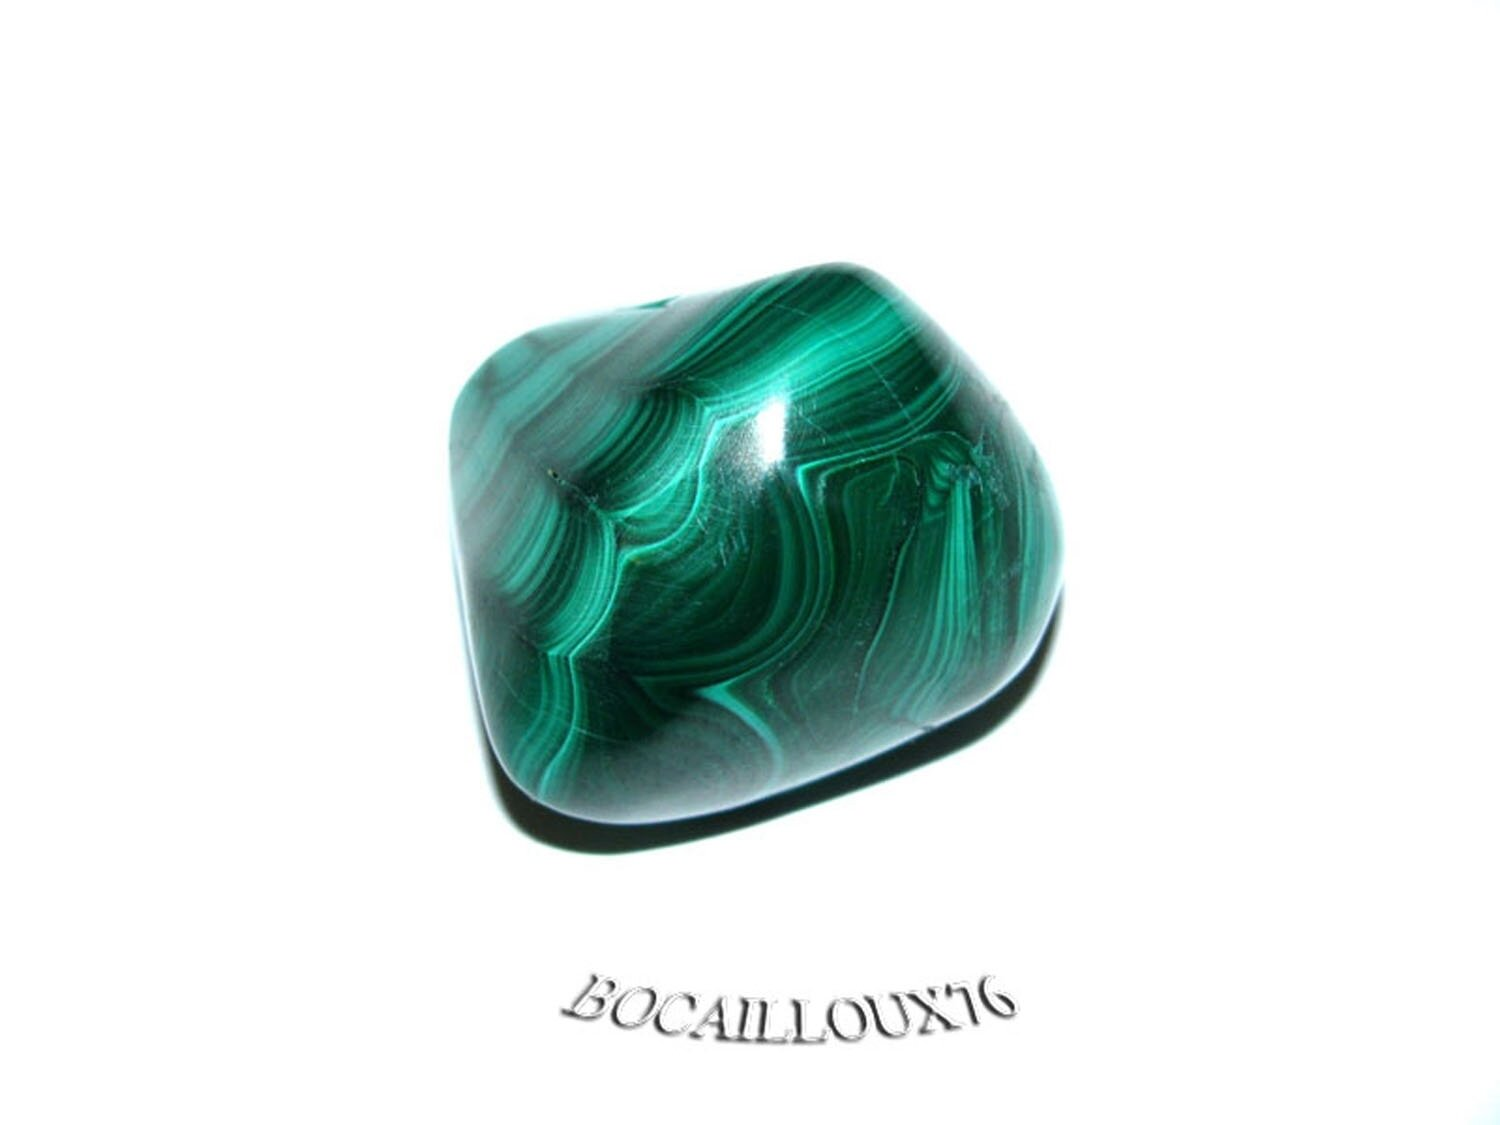 MALACHITE 4 Roulée - Pour CREATION - LITHOTHERAPIE